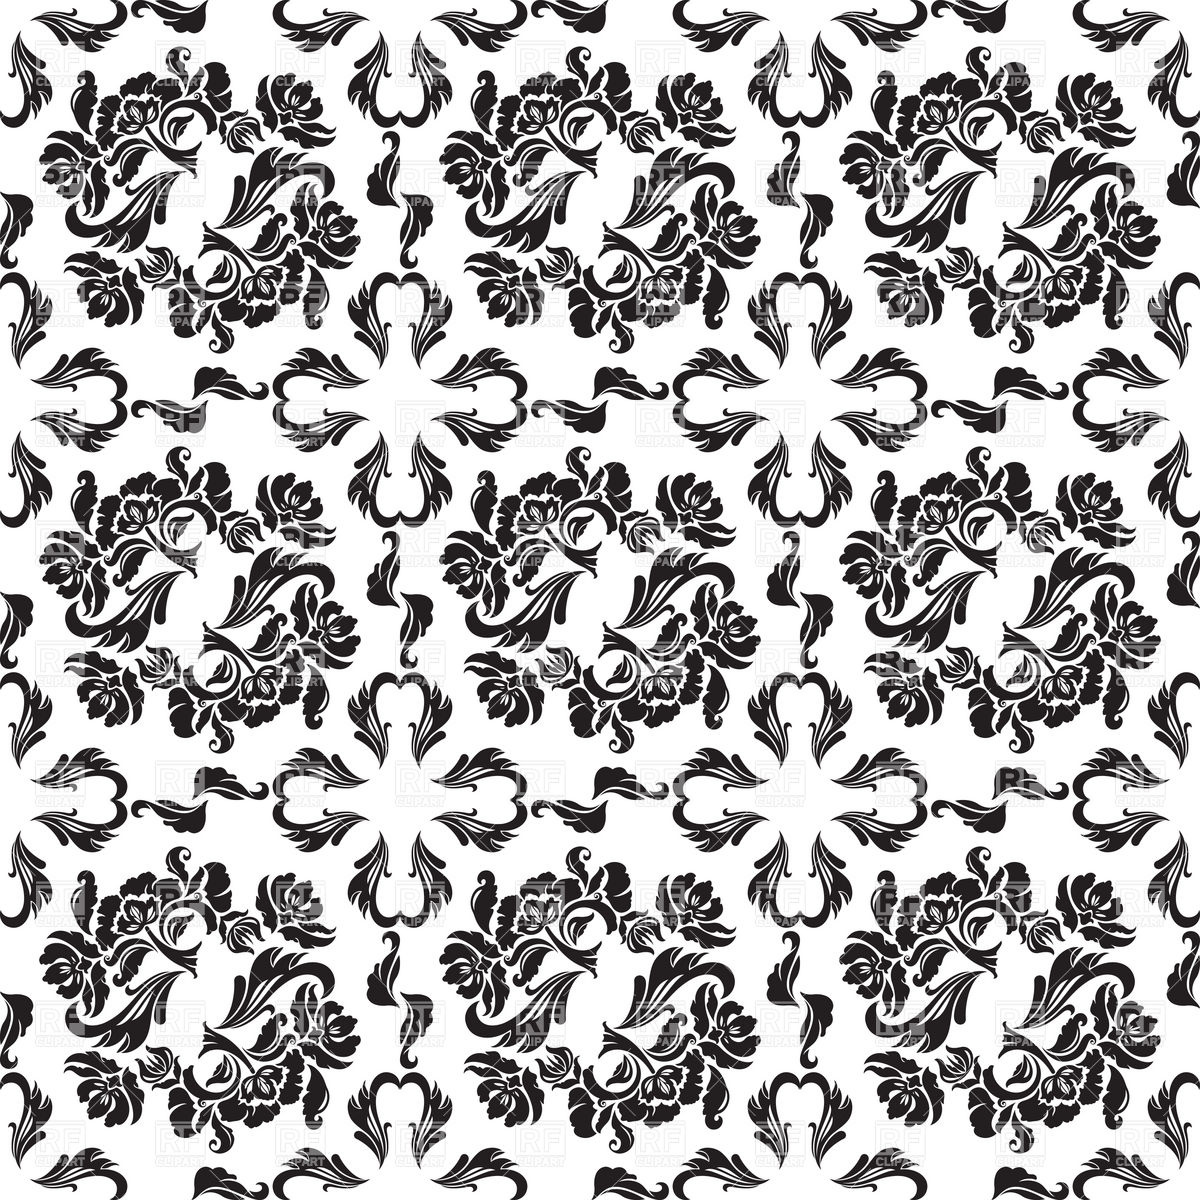 victorian wallpaper with floral pattern 18888 download royalty free 1200x1200